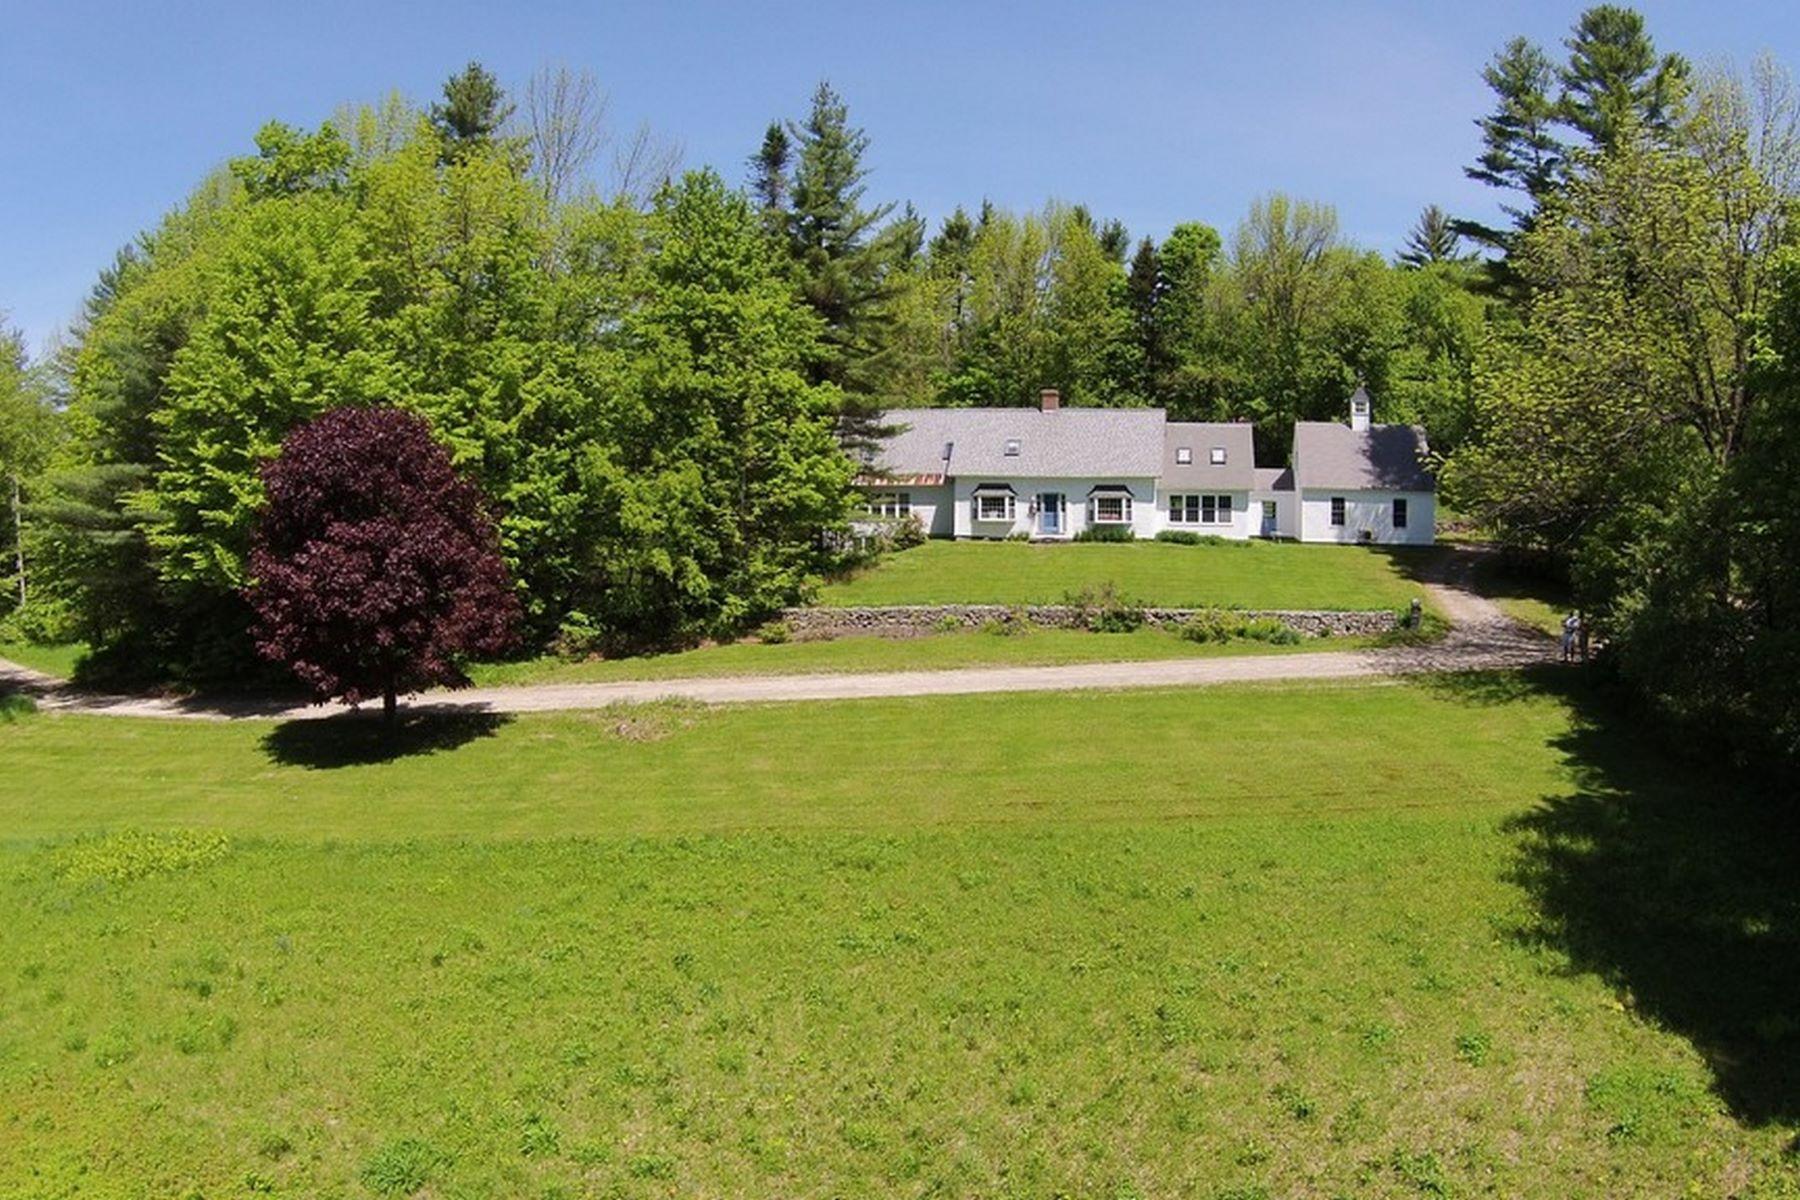 Single Family Home for Sale at 49 Old County Road, Landgrove 49 Old County Rd Landgrove, Vermont 05148 United States